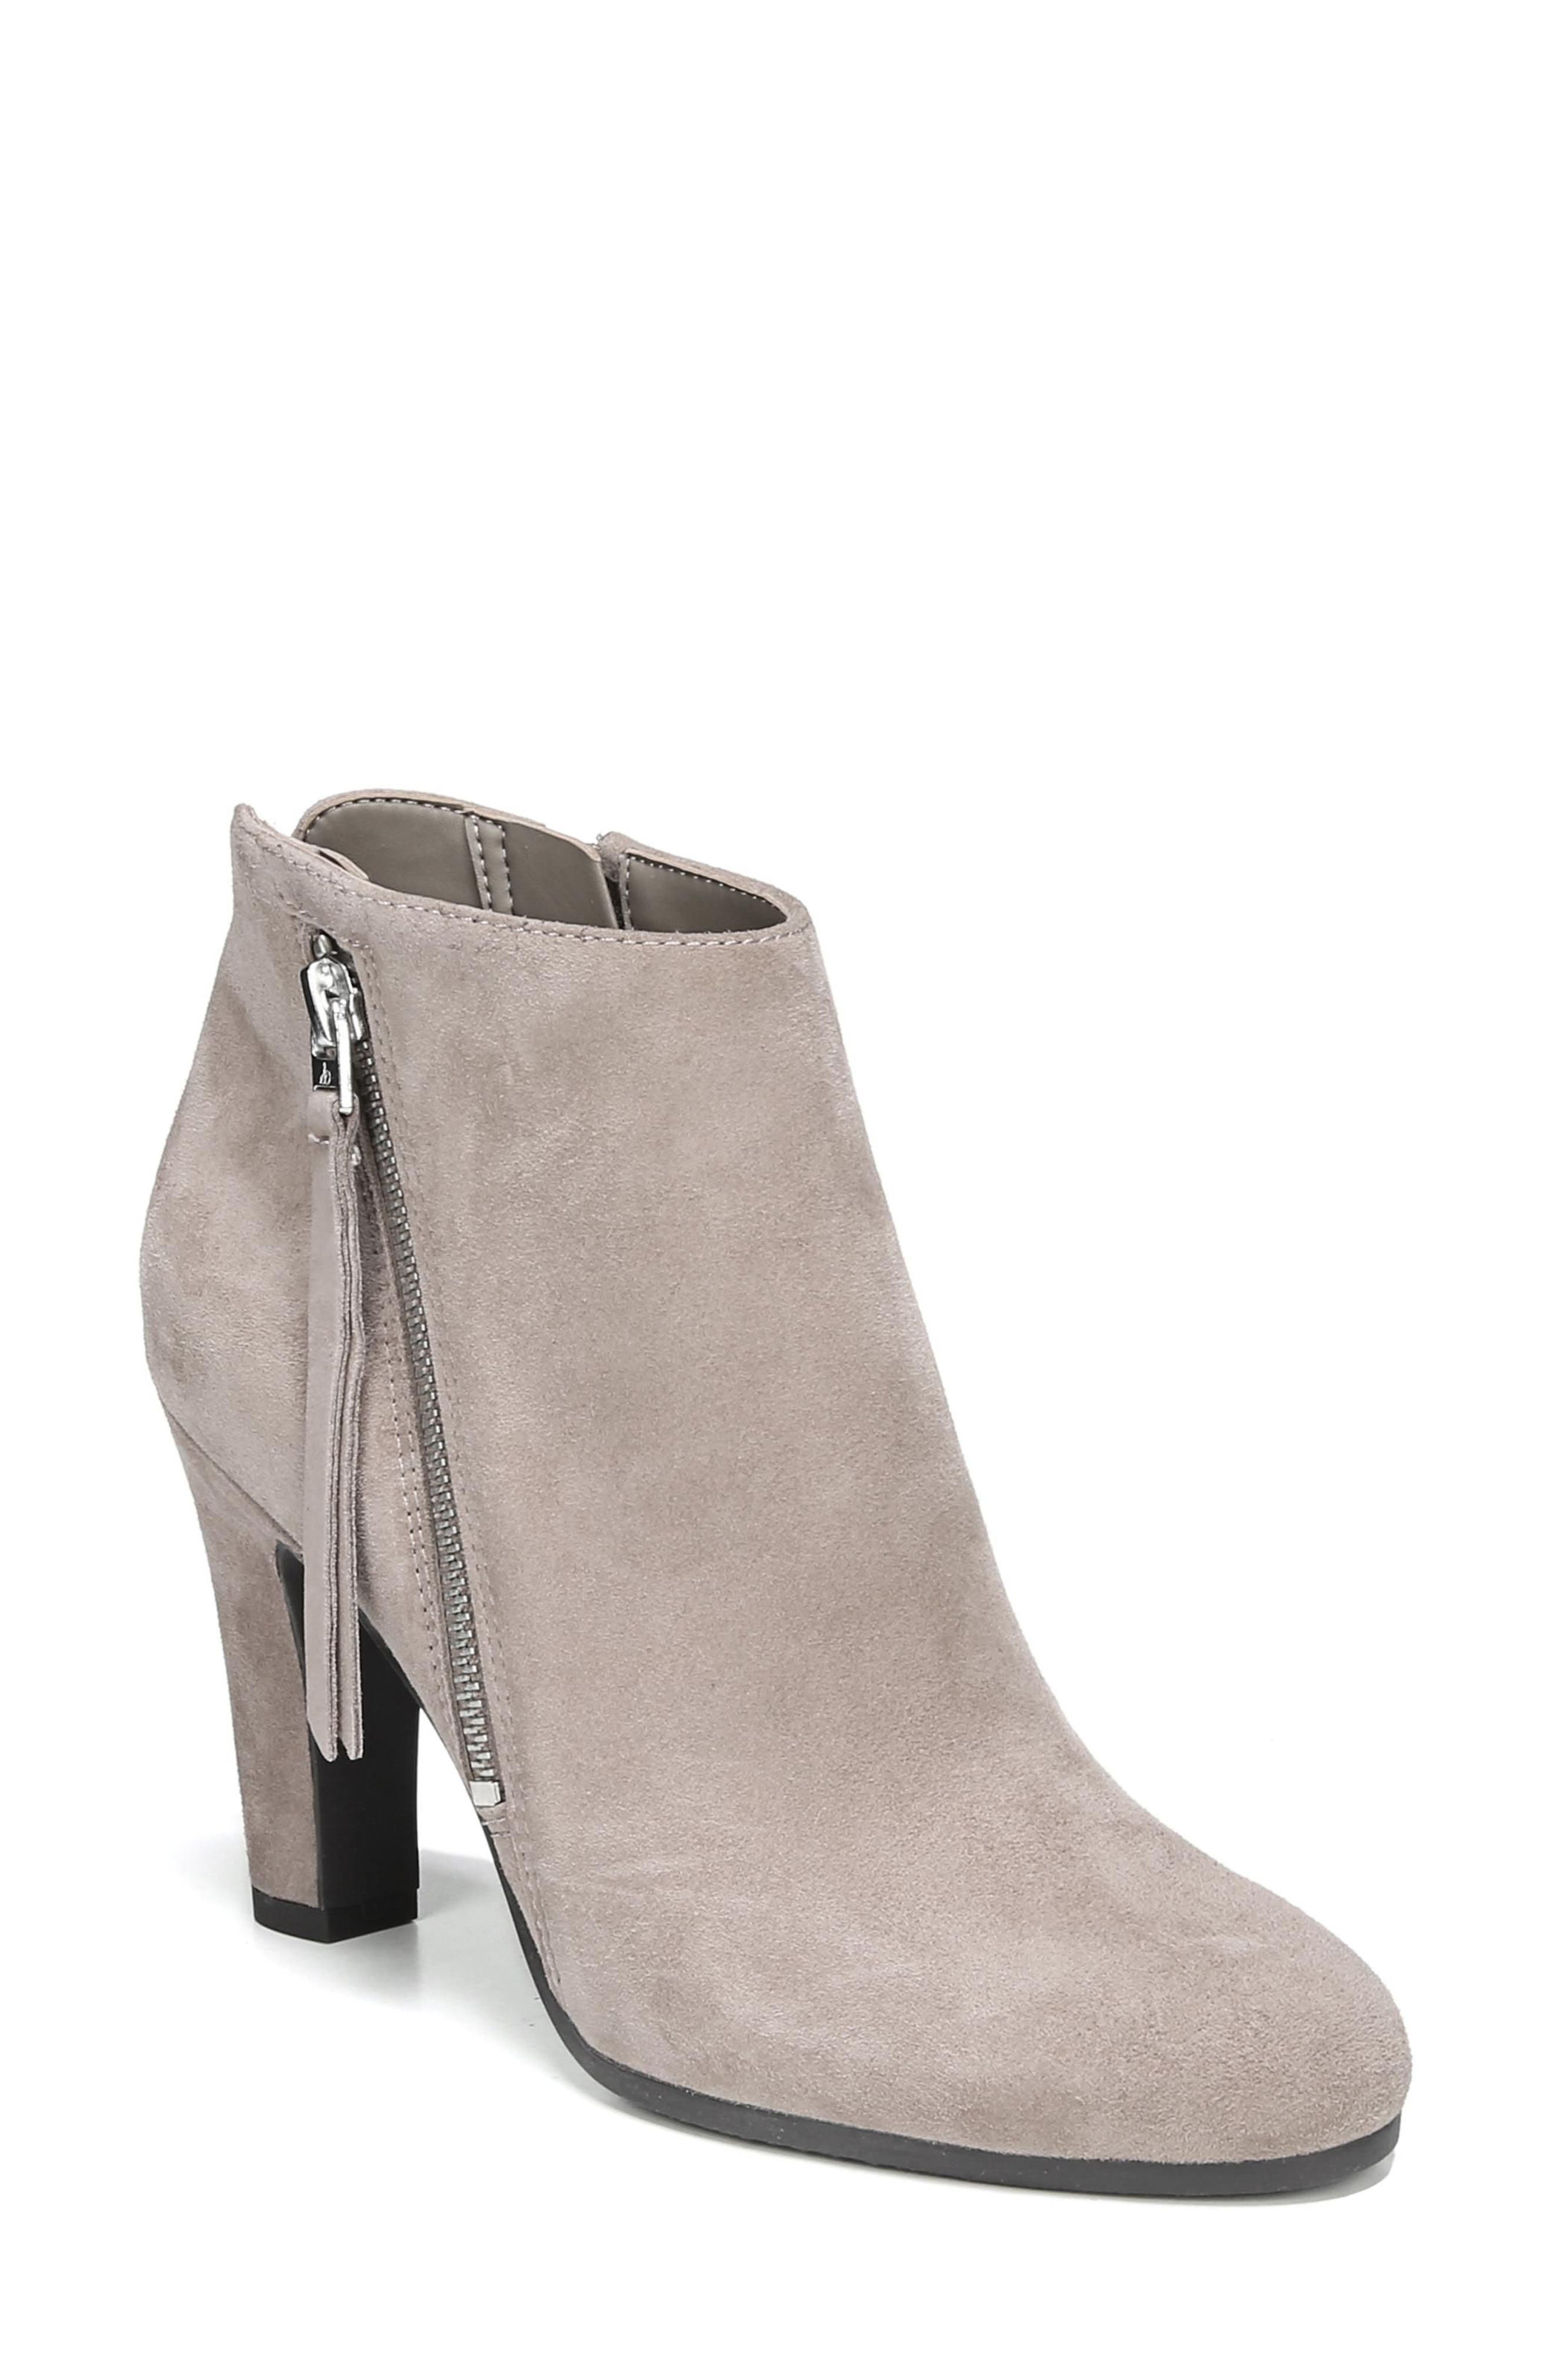 Sadee Angle Zip Bootie,                             Main thumbnail 1, color,                             NEW PUTTY SUEDE